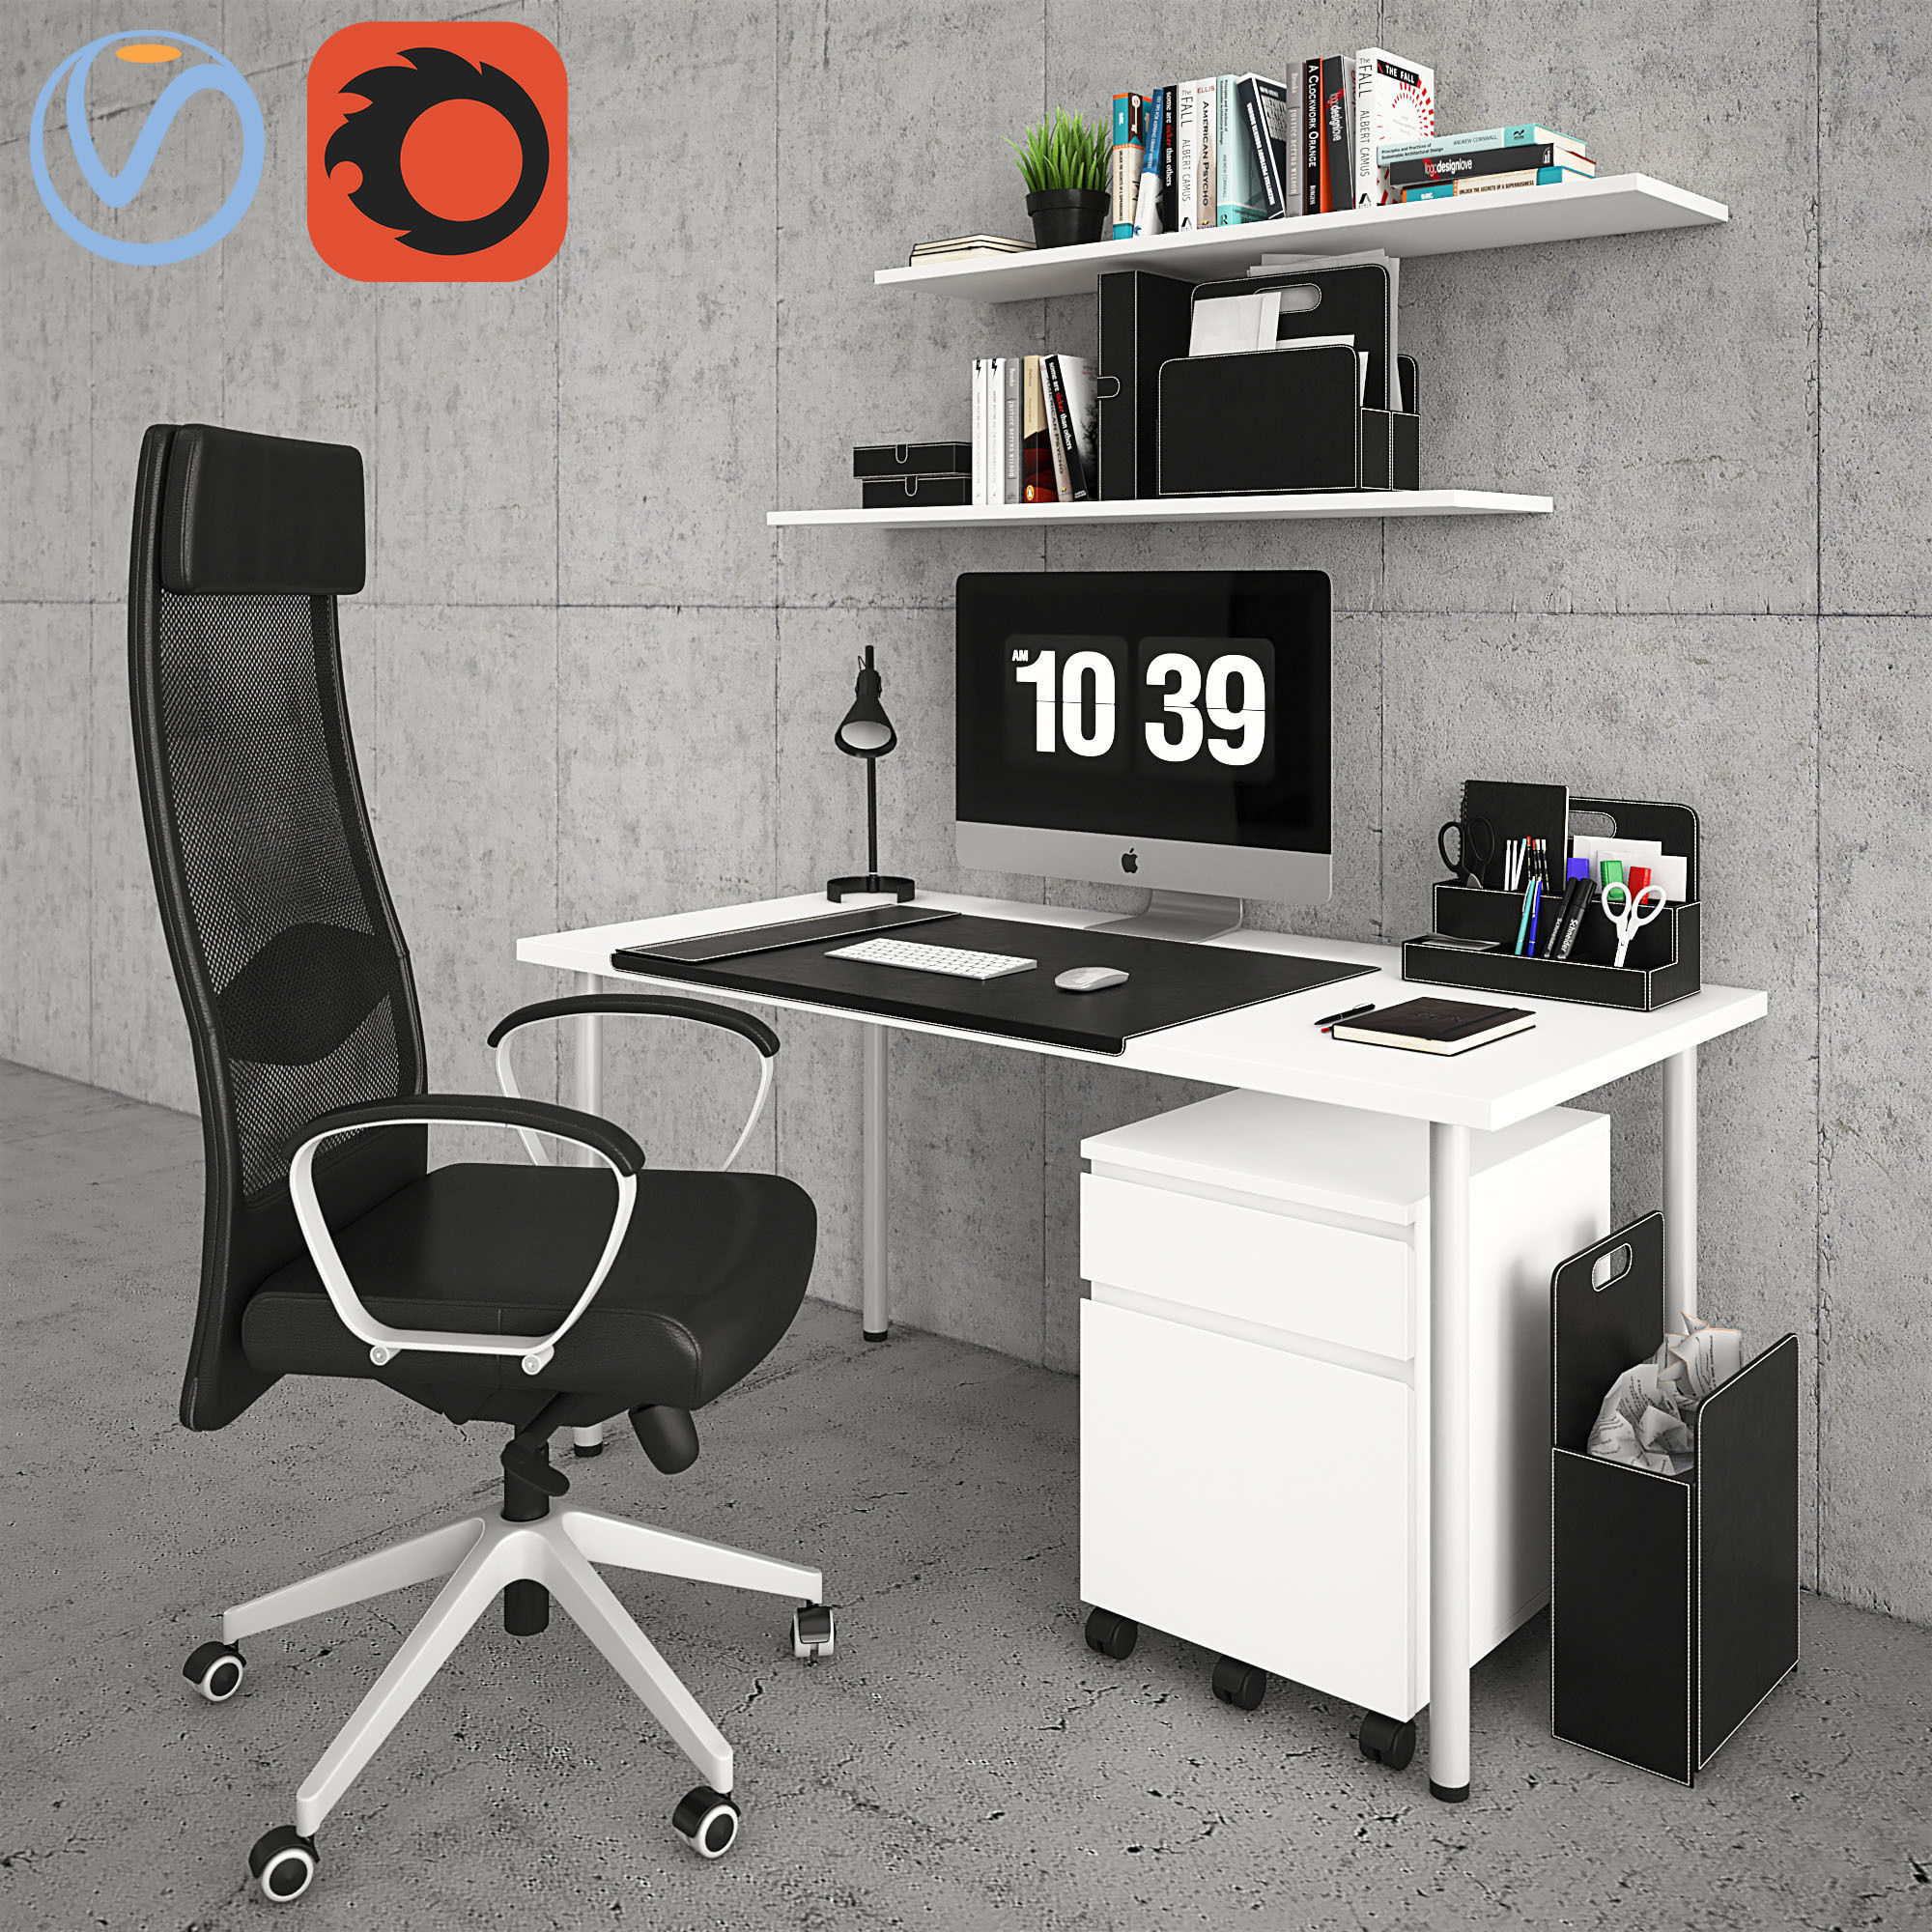 desks top guarantee tops black products desk the about brochure in office bekant with year terms ikea read en brown gb table frames